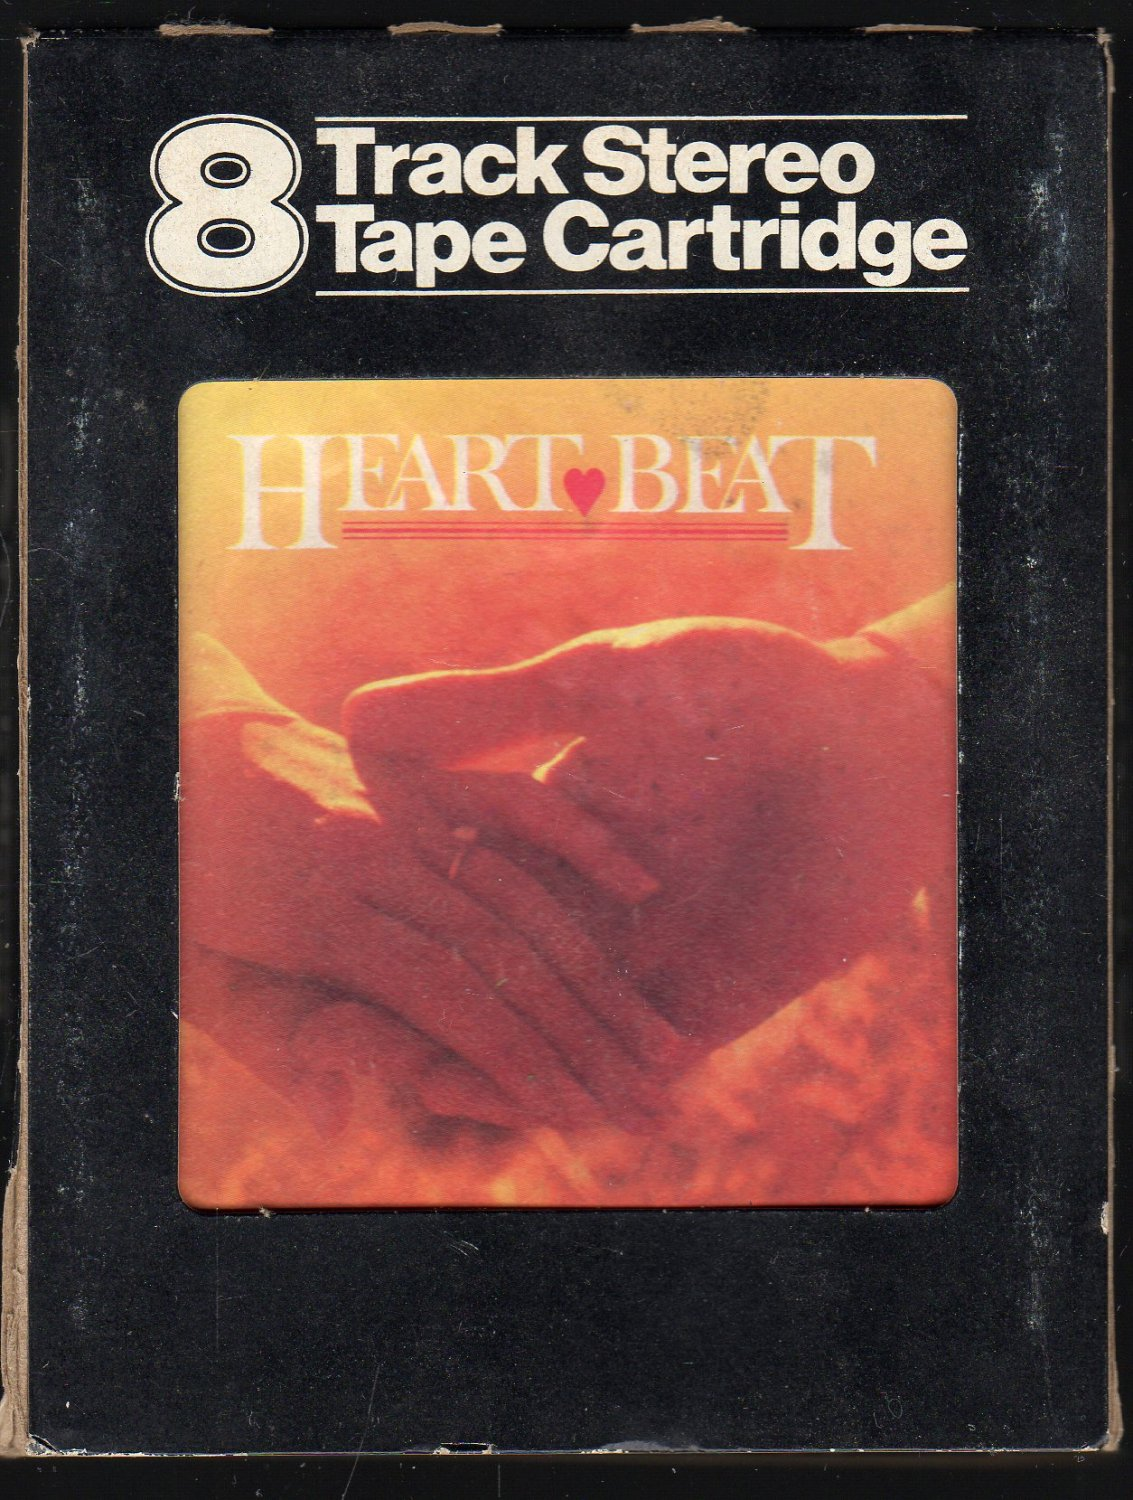 Heartbeat - Various Rock 1980 I&M A36 8-track tape